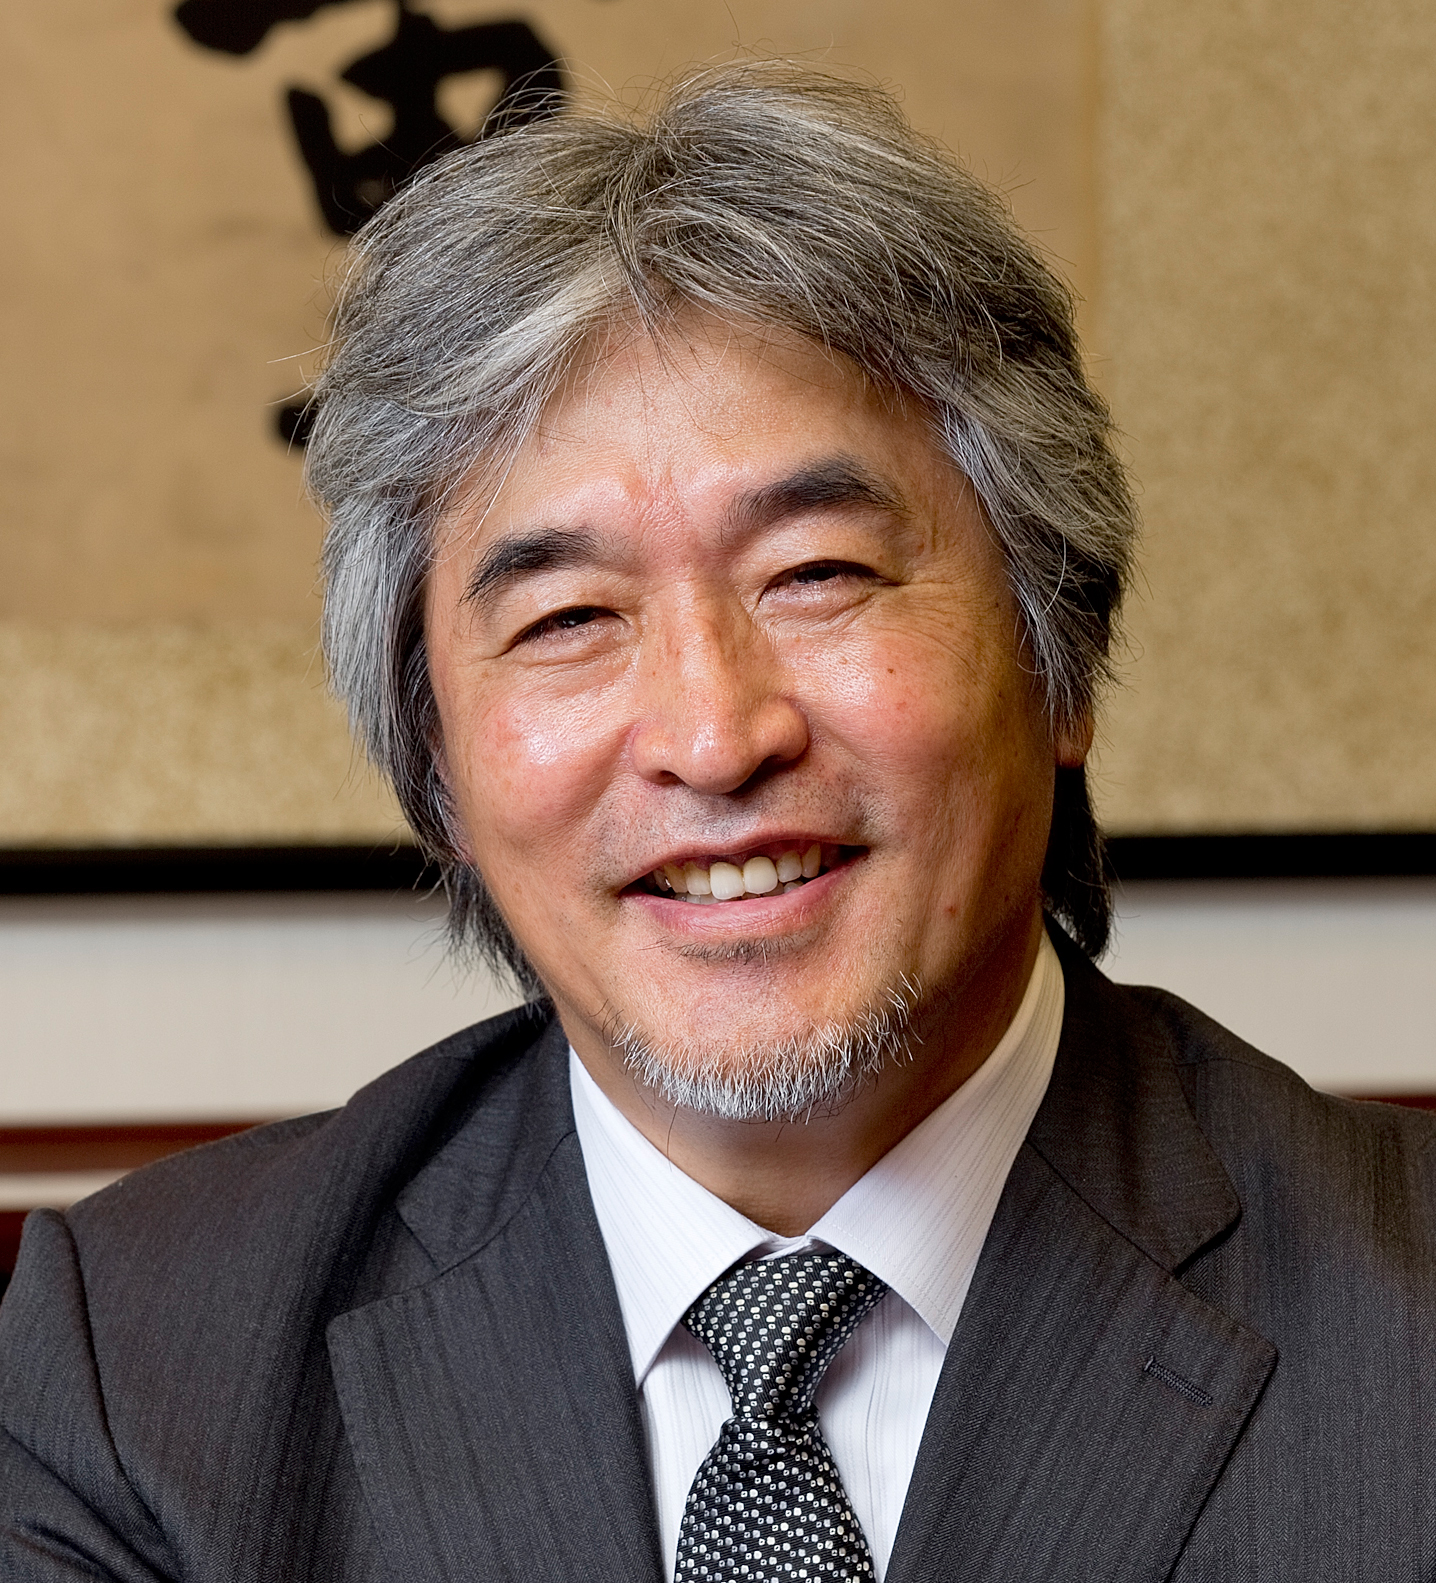 YAMAGIWA Juichi, President of Kyoto University